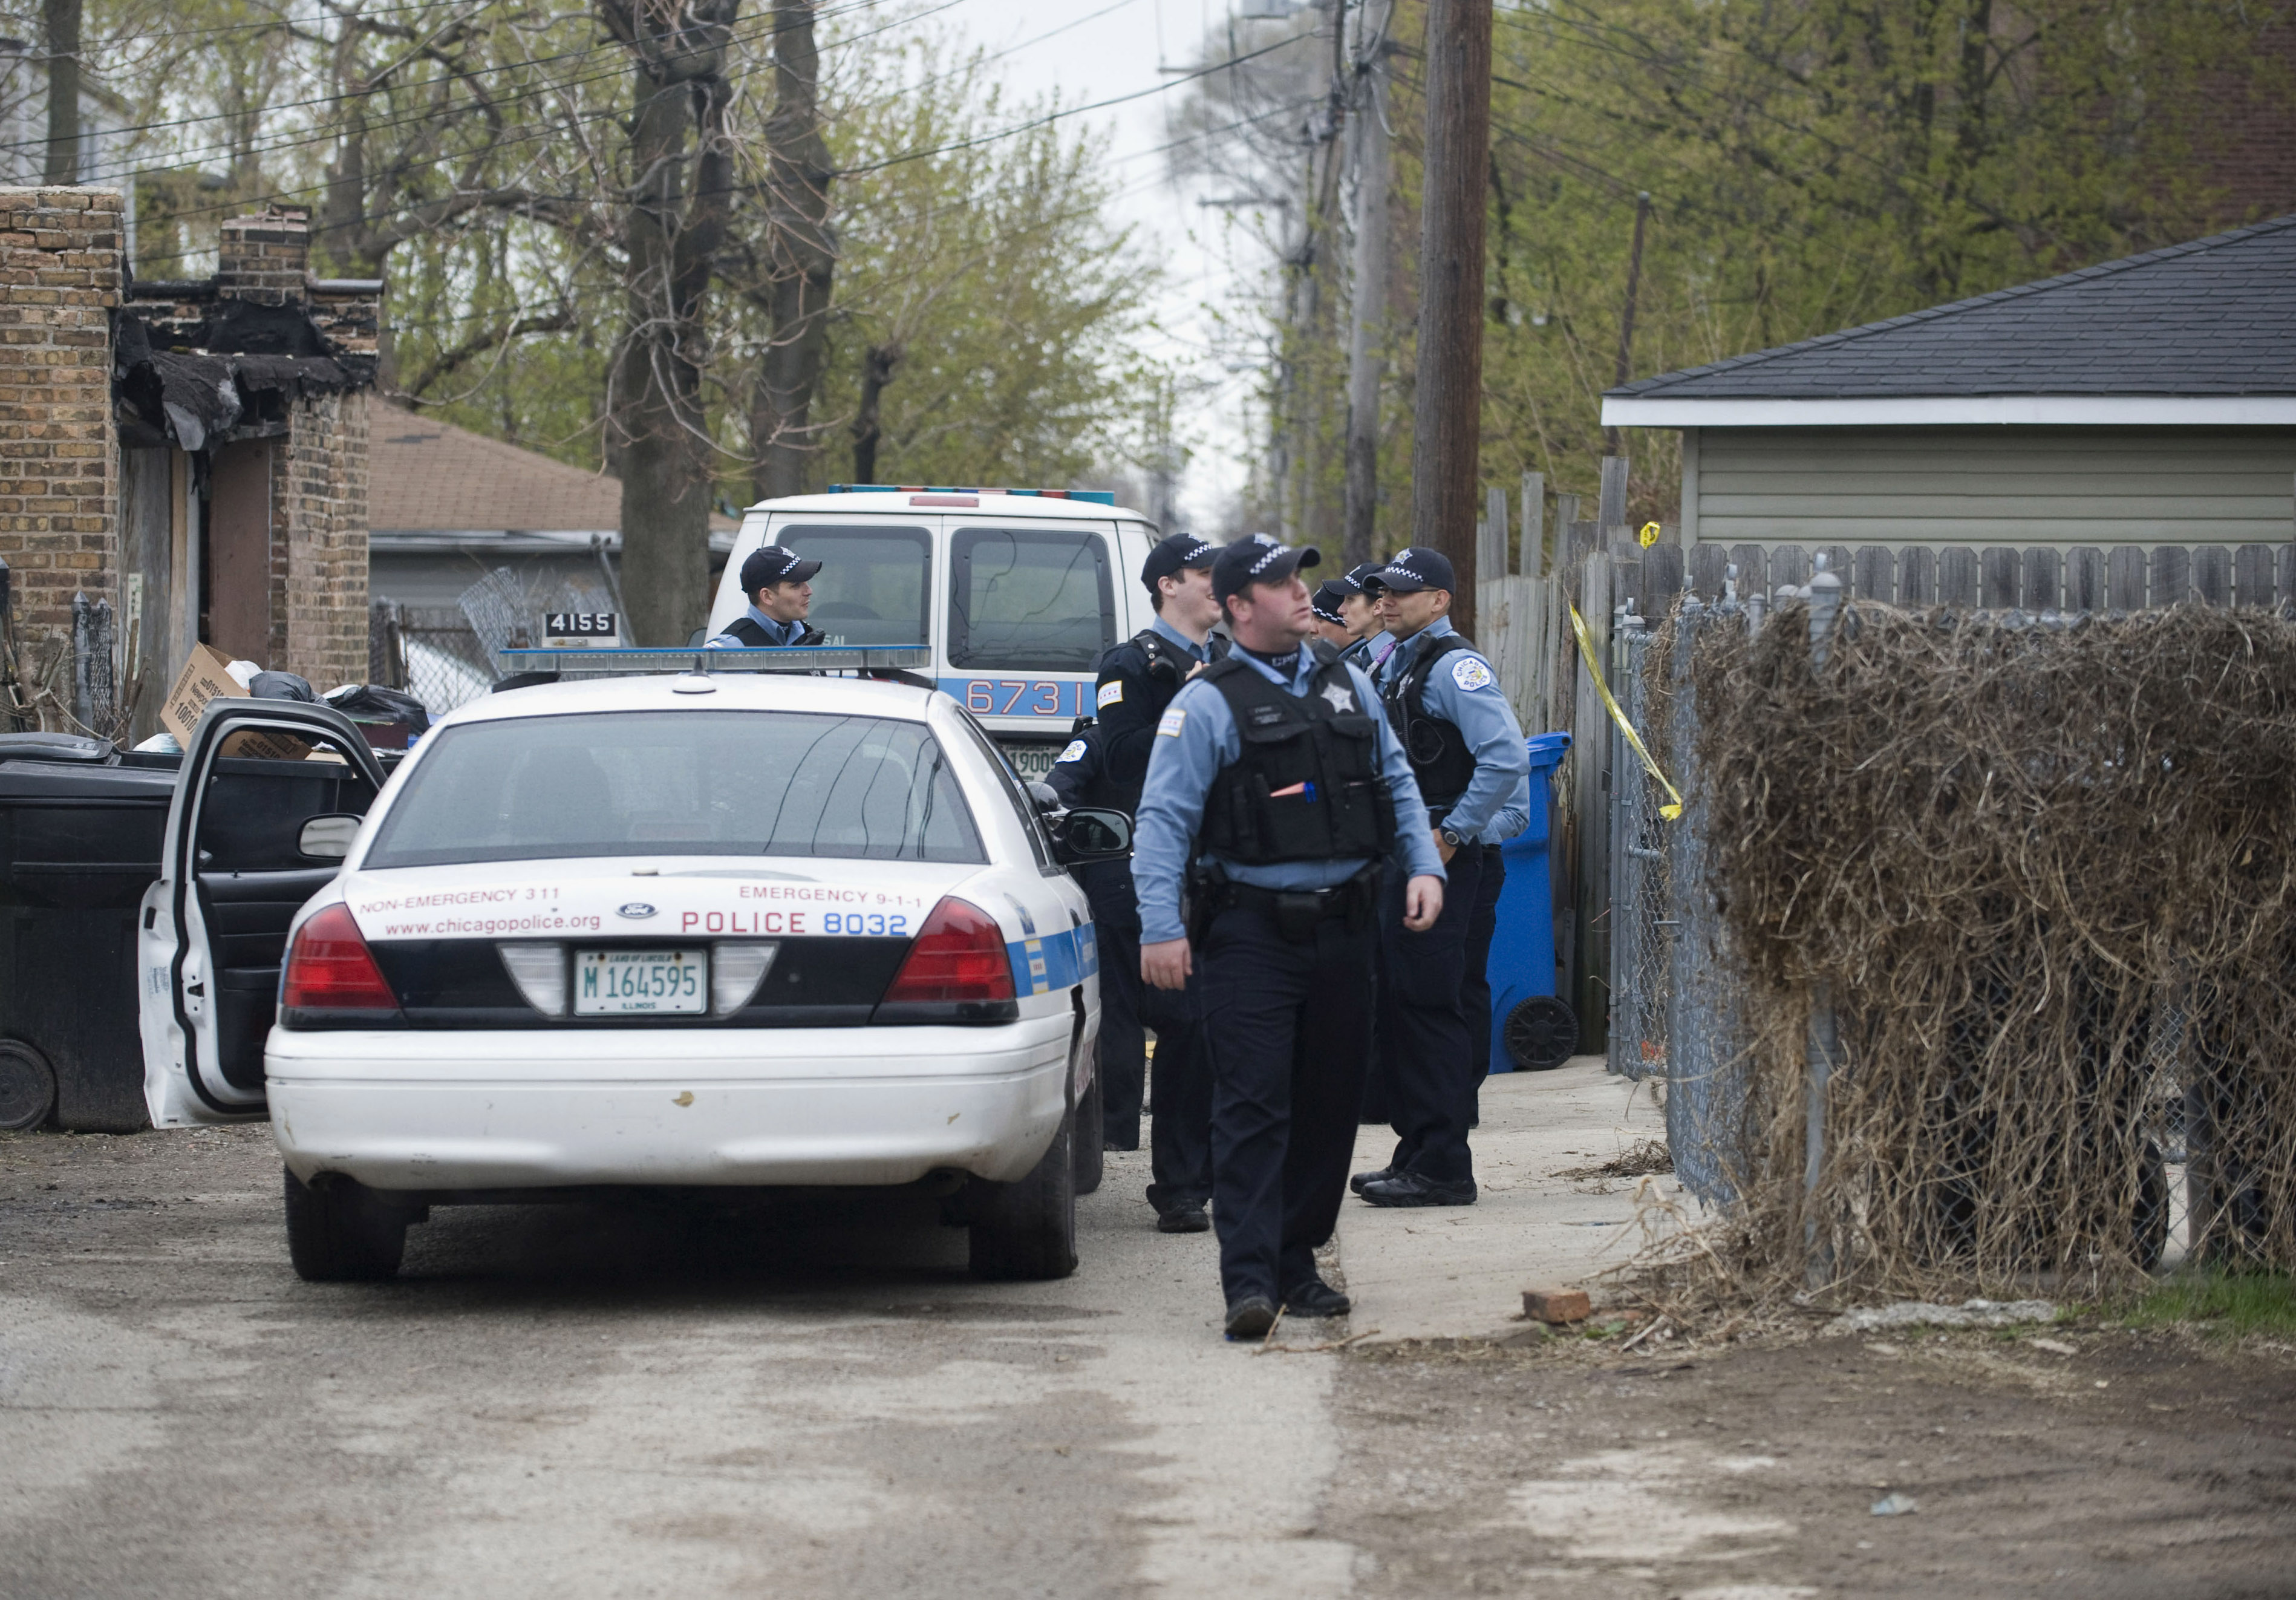 Police stand outside a residence in Chicago after a 14-year-old girl was fatally shot and another girl wounded in the Back of the Yards neighborhood in Chicago, April 28, 2014.